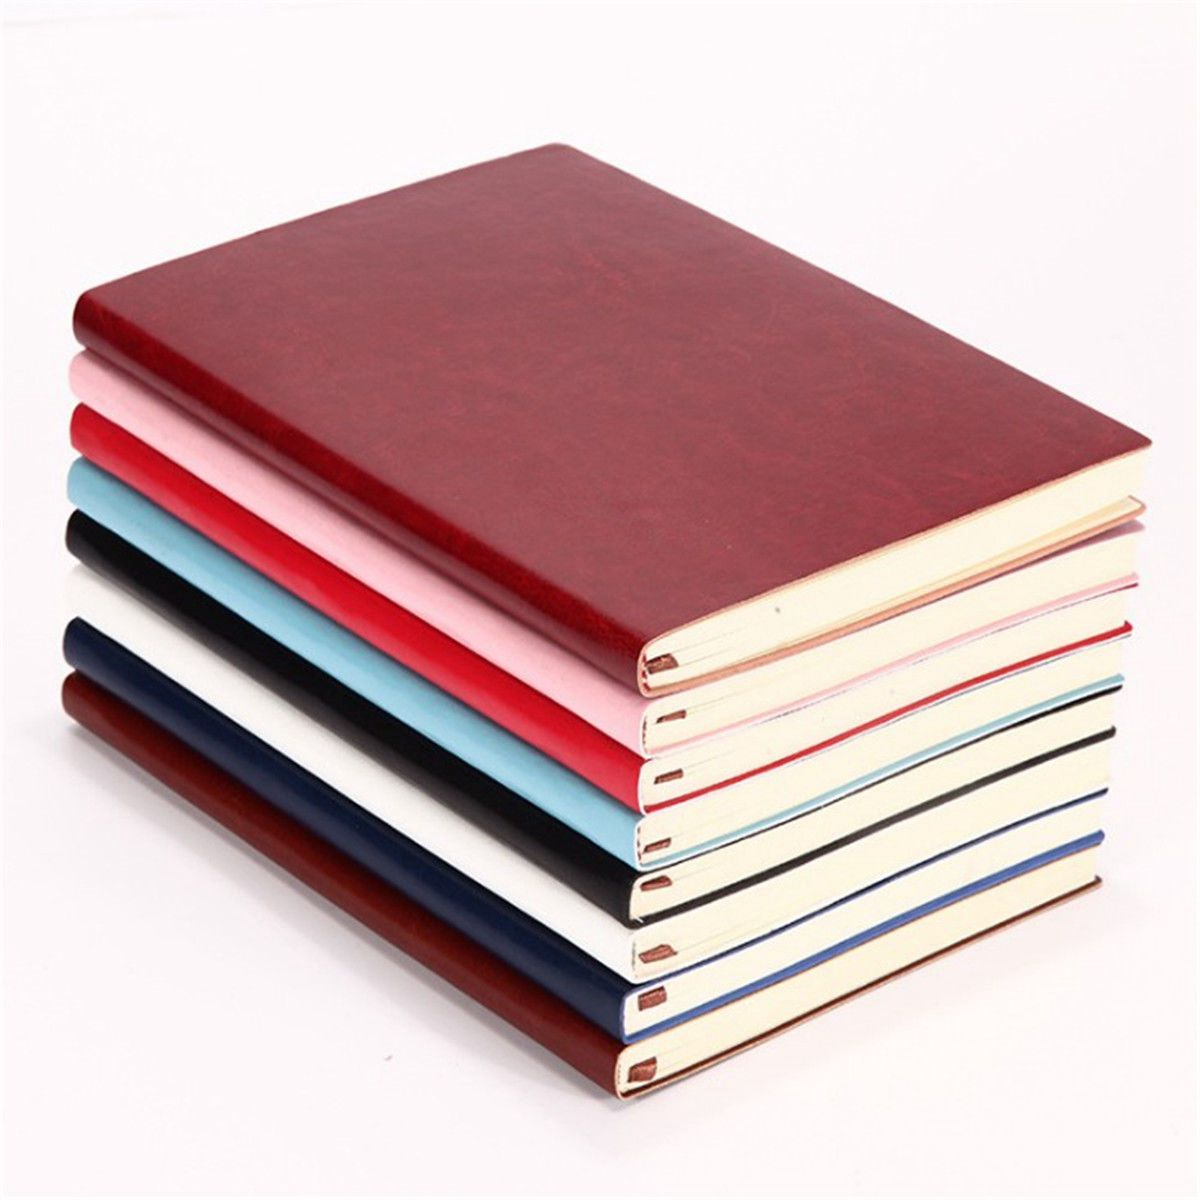 6 Color Random Soft Cover PU Leather Notebook Writing Journal 100 Page Lined Diary Book kipling r kipling the man who would be king